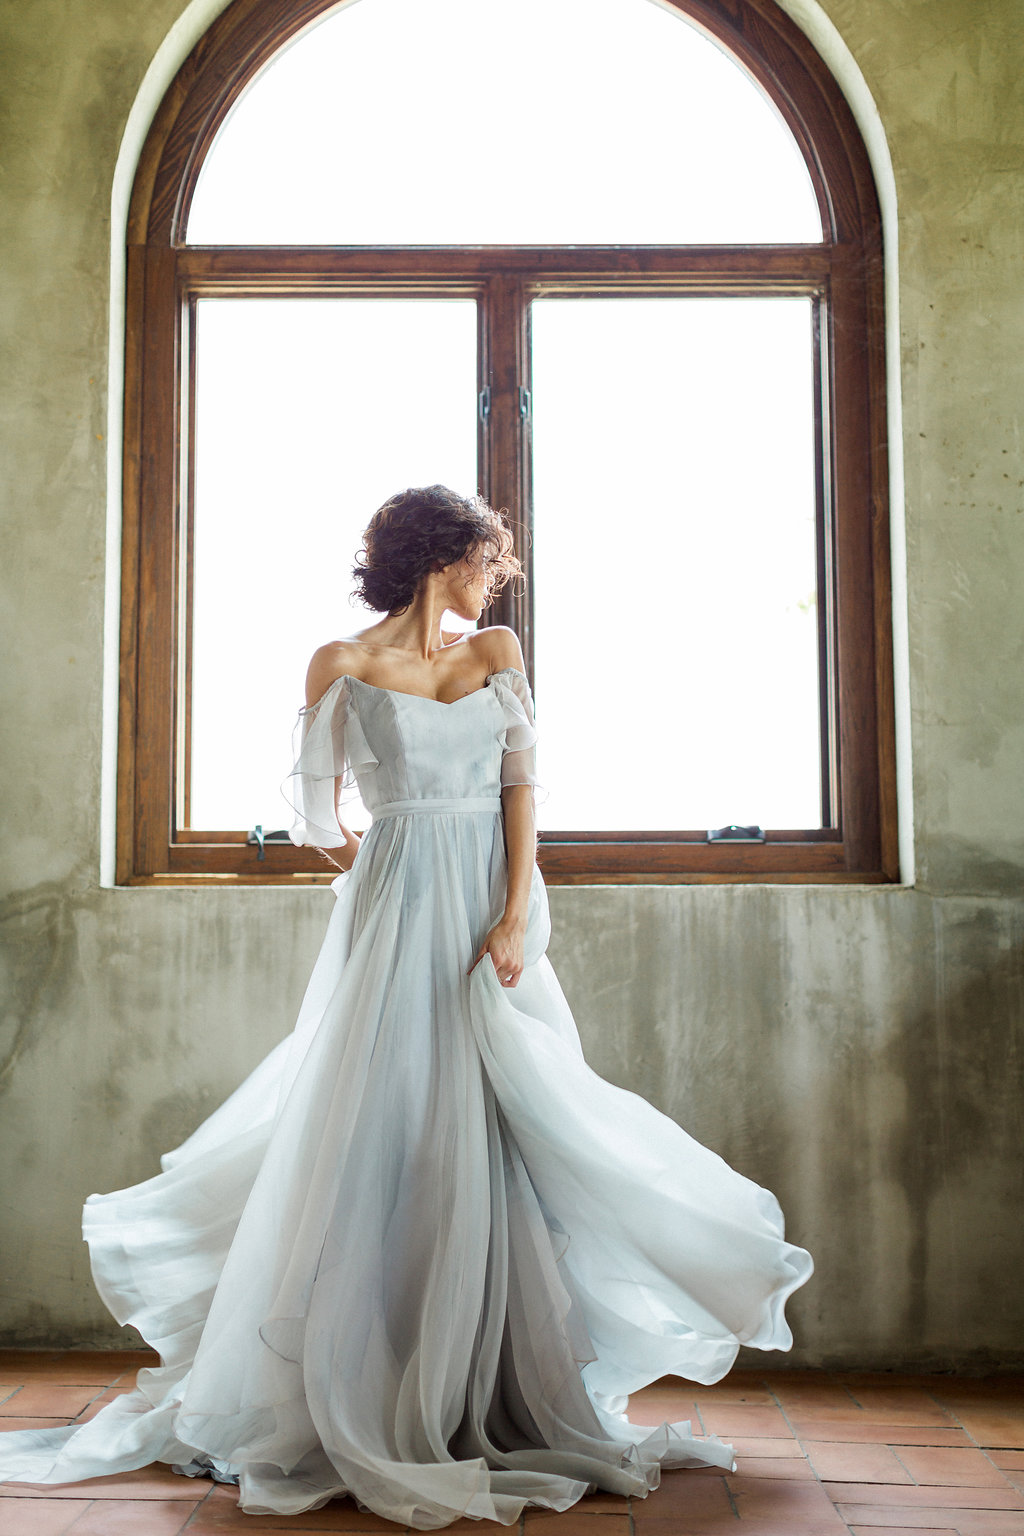 blue handpainted wedding gowns by Leanne Marshall - https://ruffledblog.com/cloudy-day-wedding-inspiration-with-a-hand-painted-bridal-gown